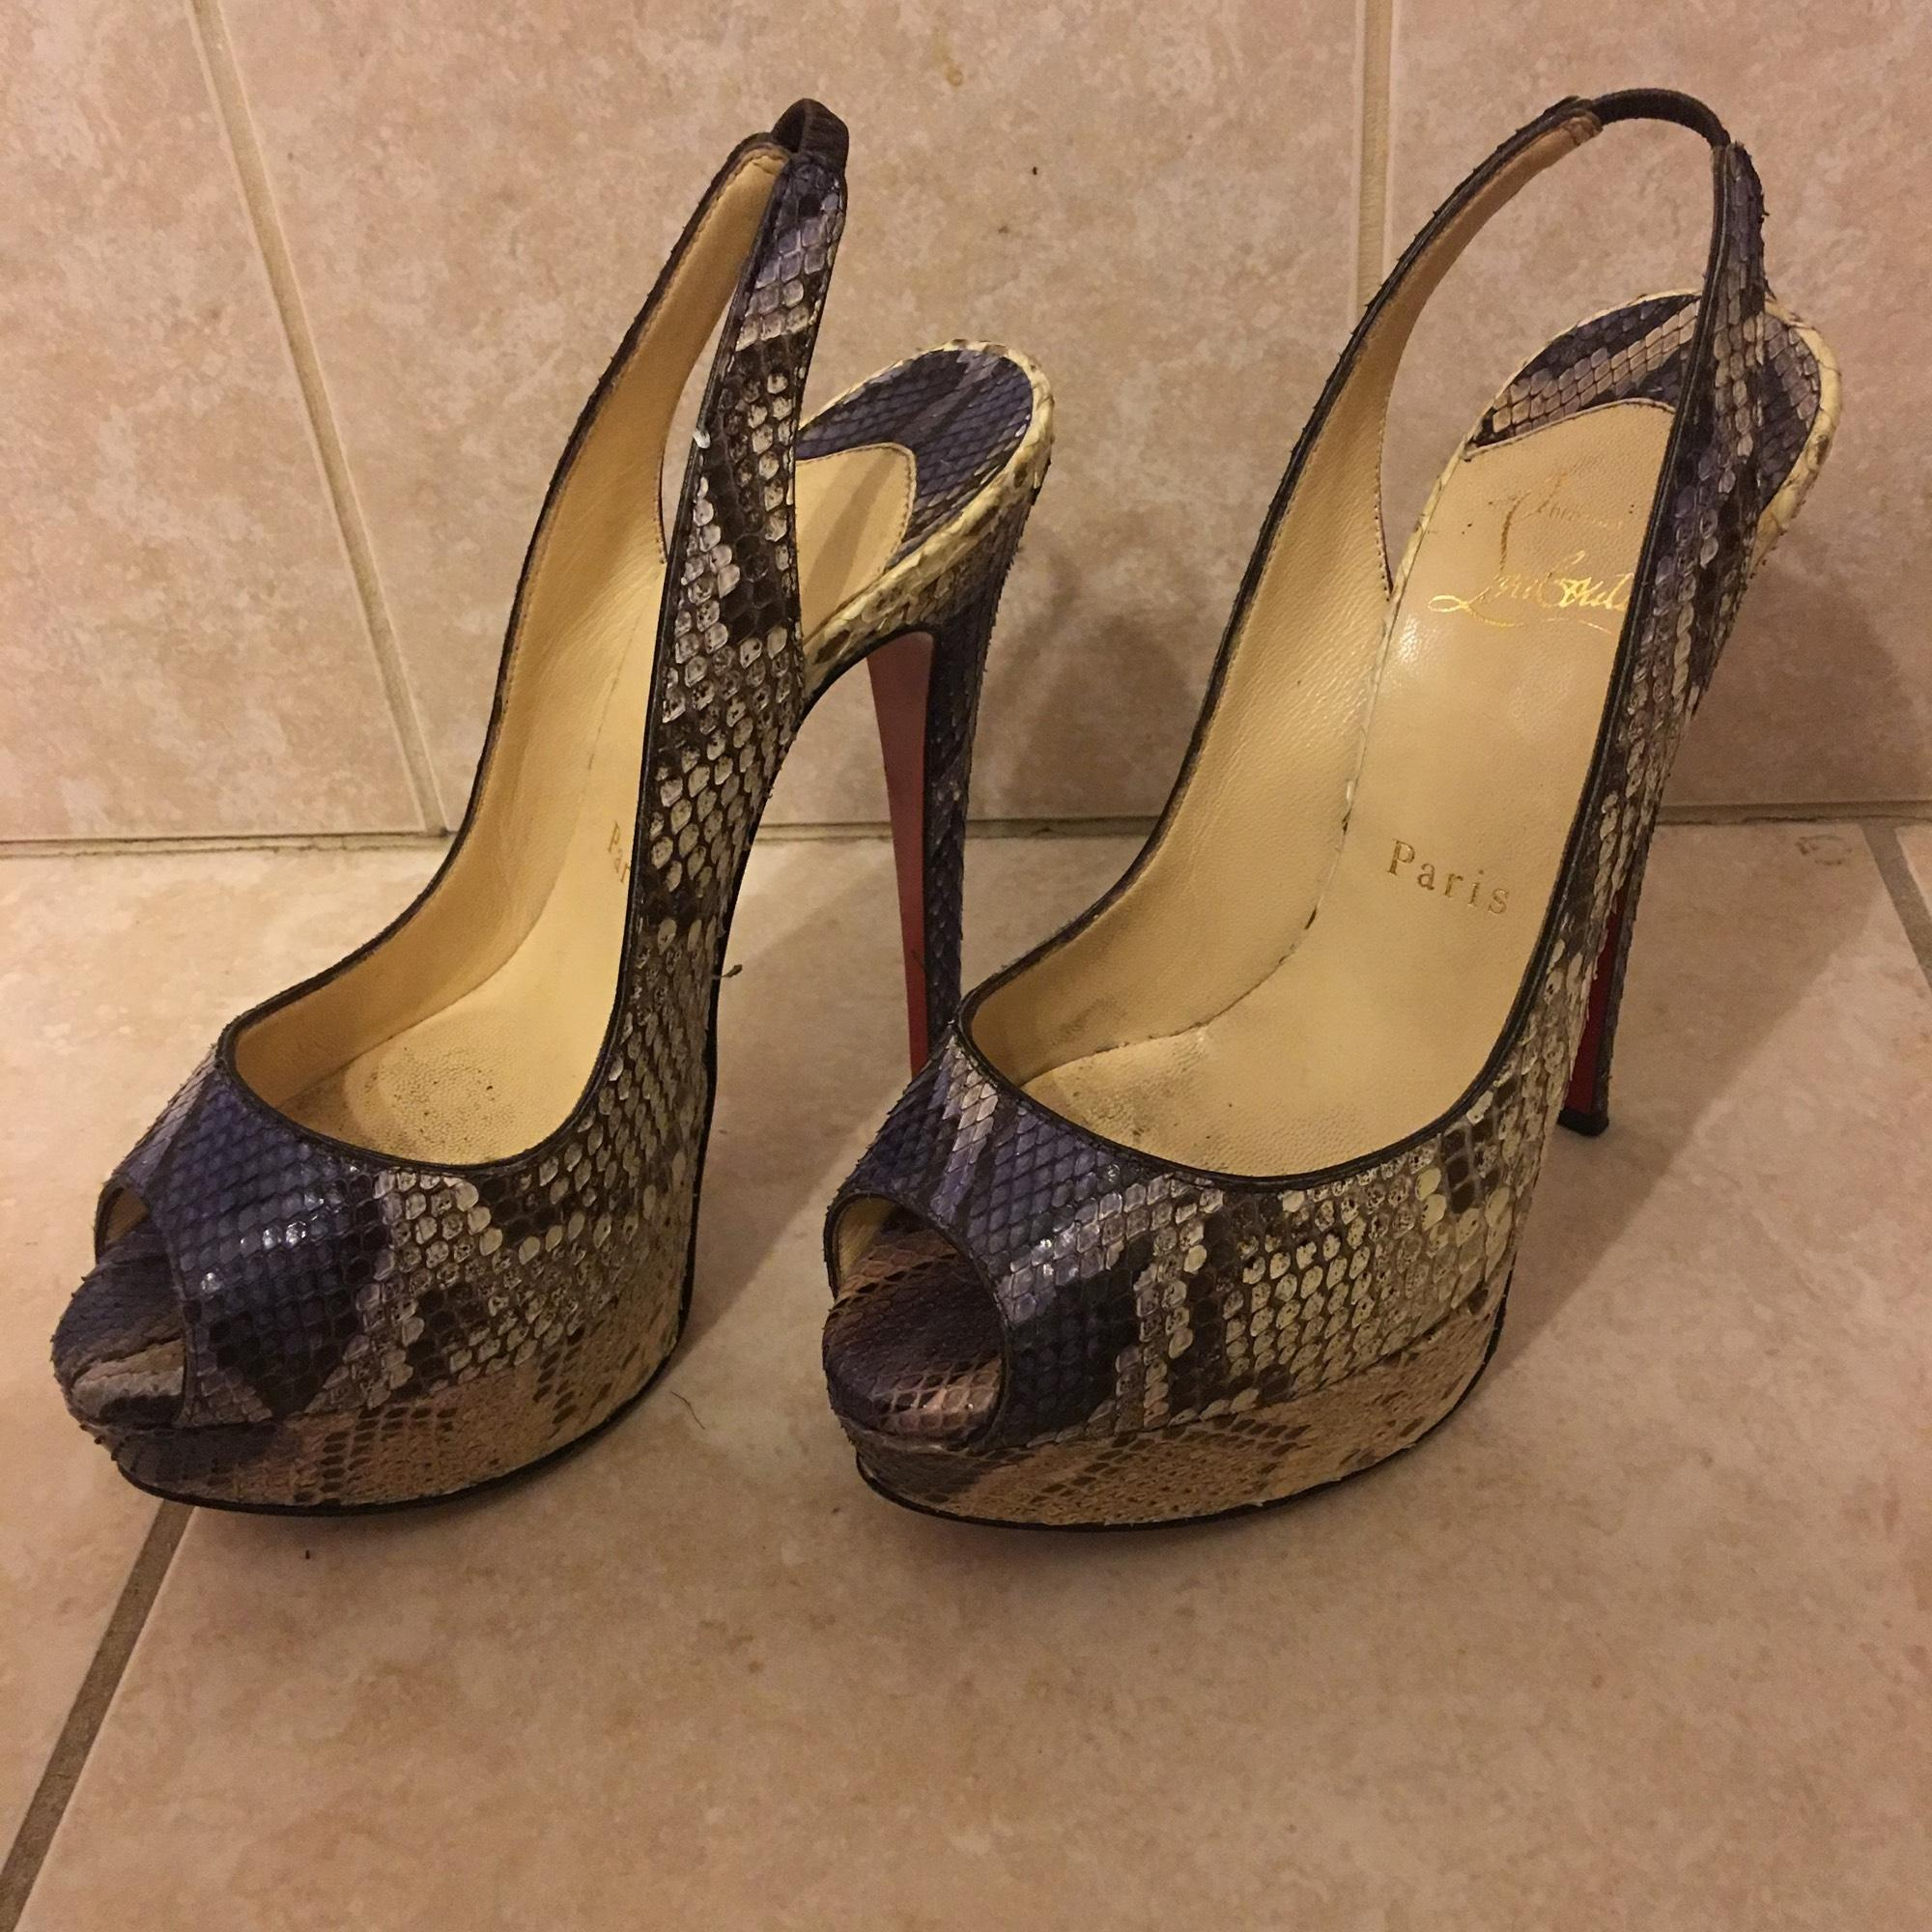 2e9f11da9b5 ... B Christian Louboutin Sling Back Pumps Pumps Pumps Platforms Size US  5.5 Regular (M